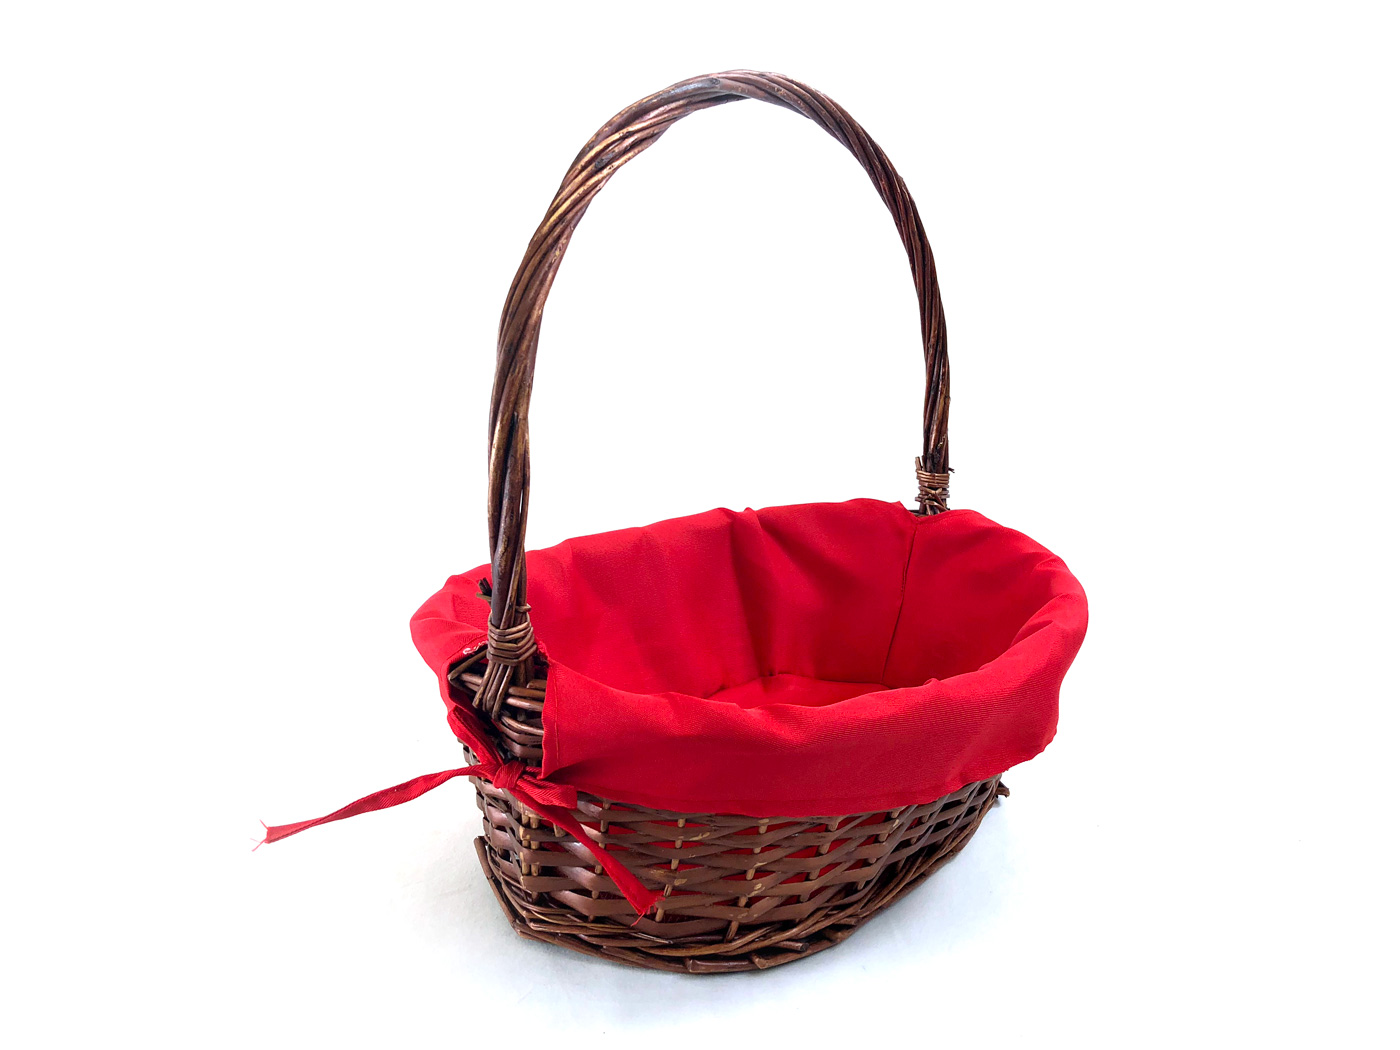 Oval Baskets With Red Liner & Handle side